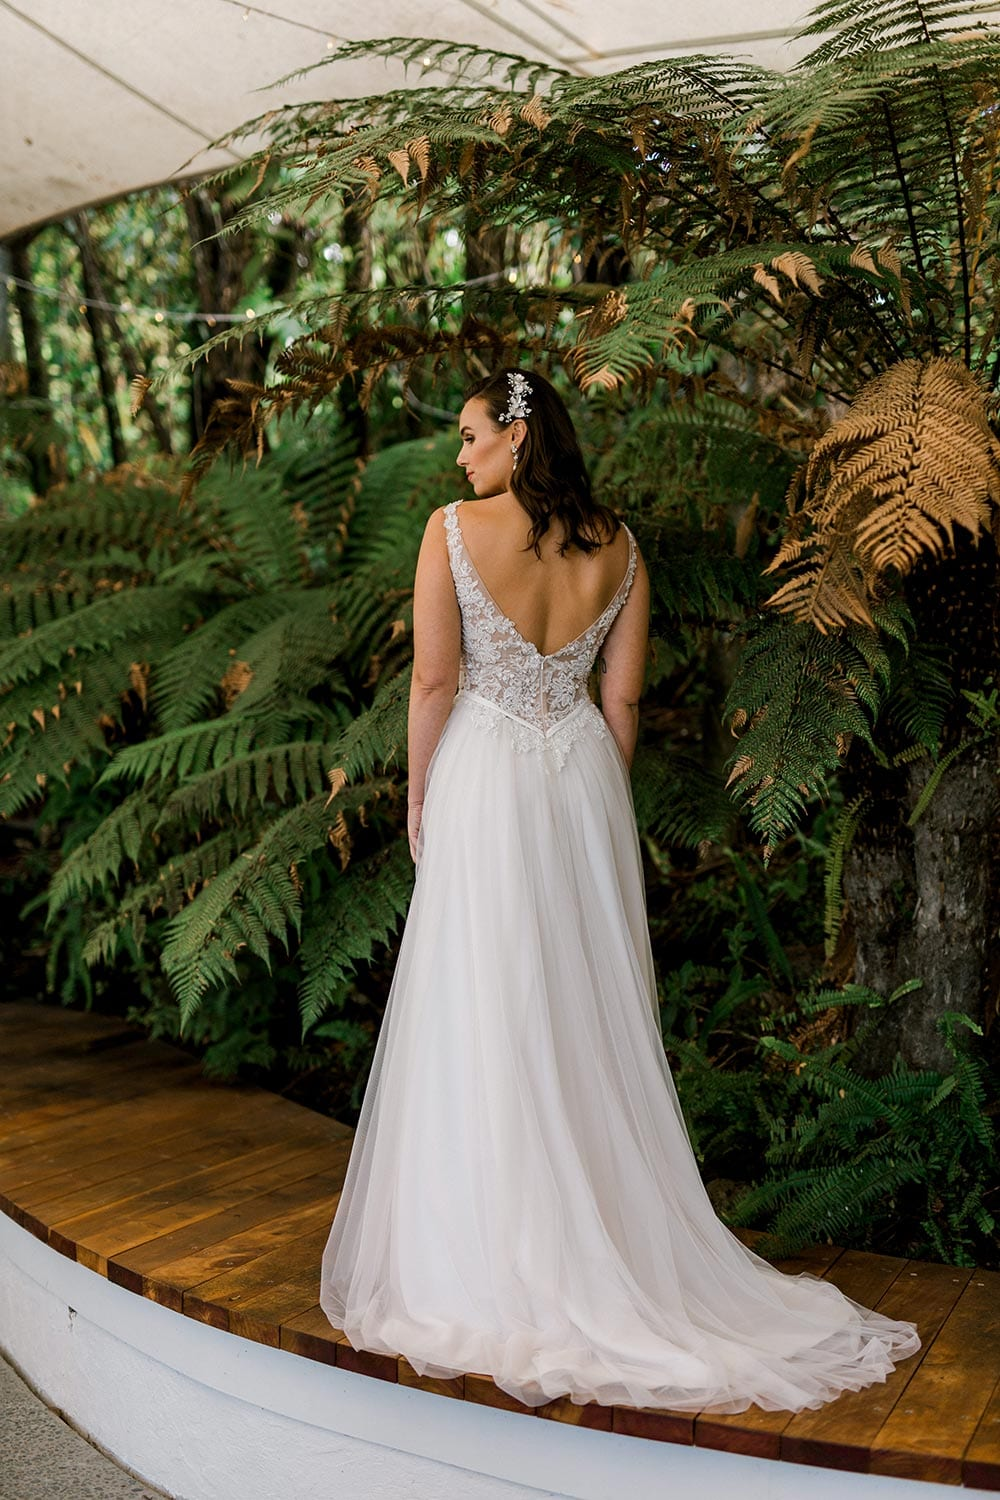 Vivian Wedding gown from Vinka Design - A stunning gown with a deep V-neckline on both the front & back. Fitted semi-sheer nude bodice embellished with a beaded floral lace, a soft layered tulle skirt. Worn in conservatory with fern background, model facing away.